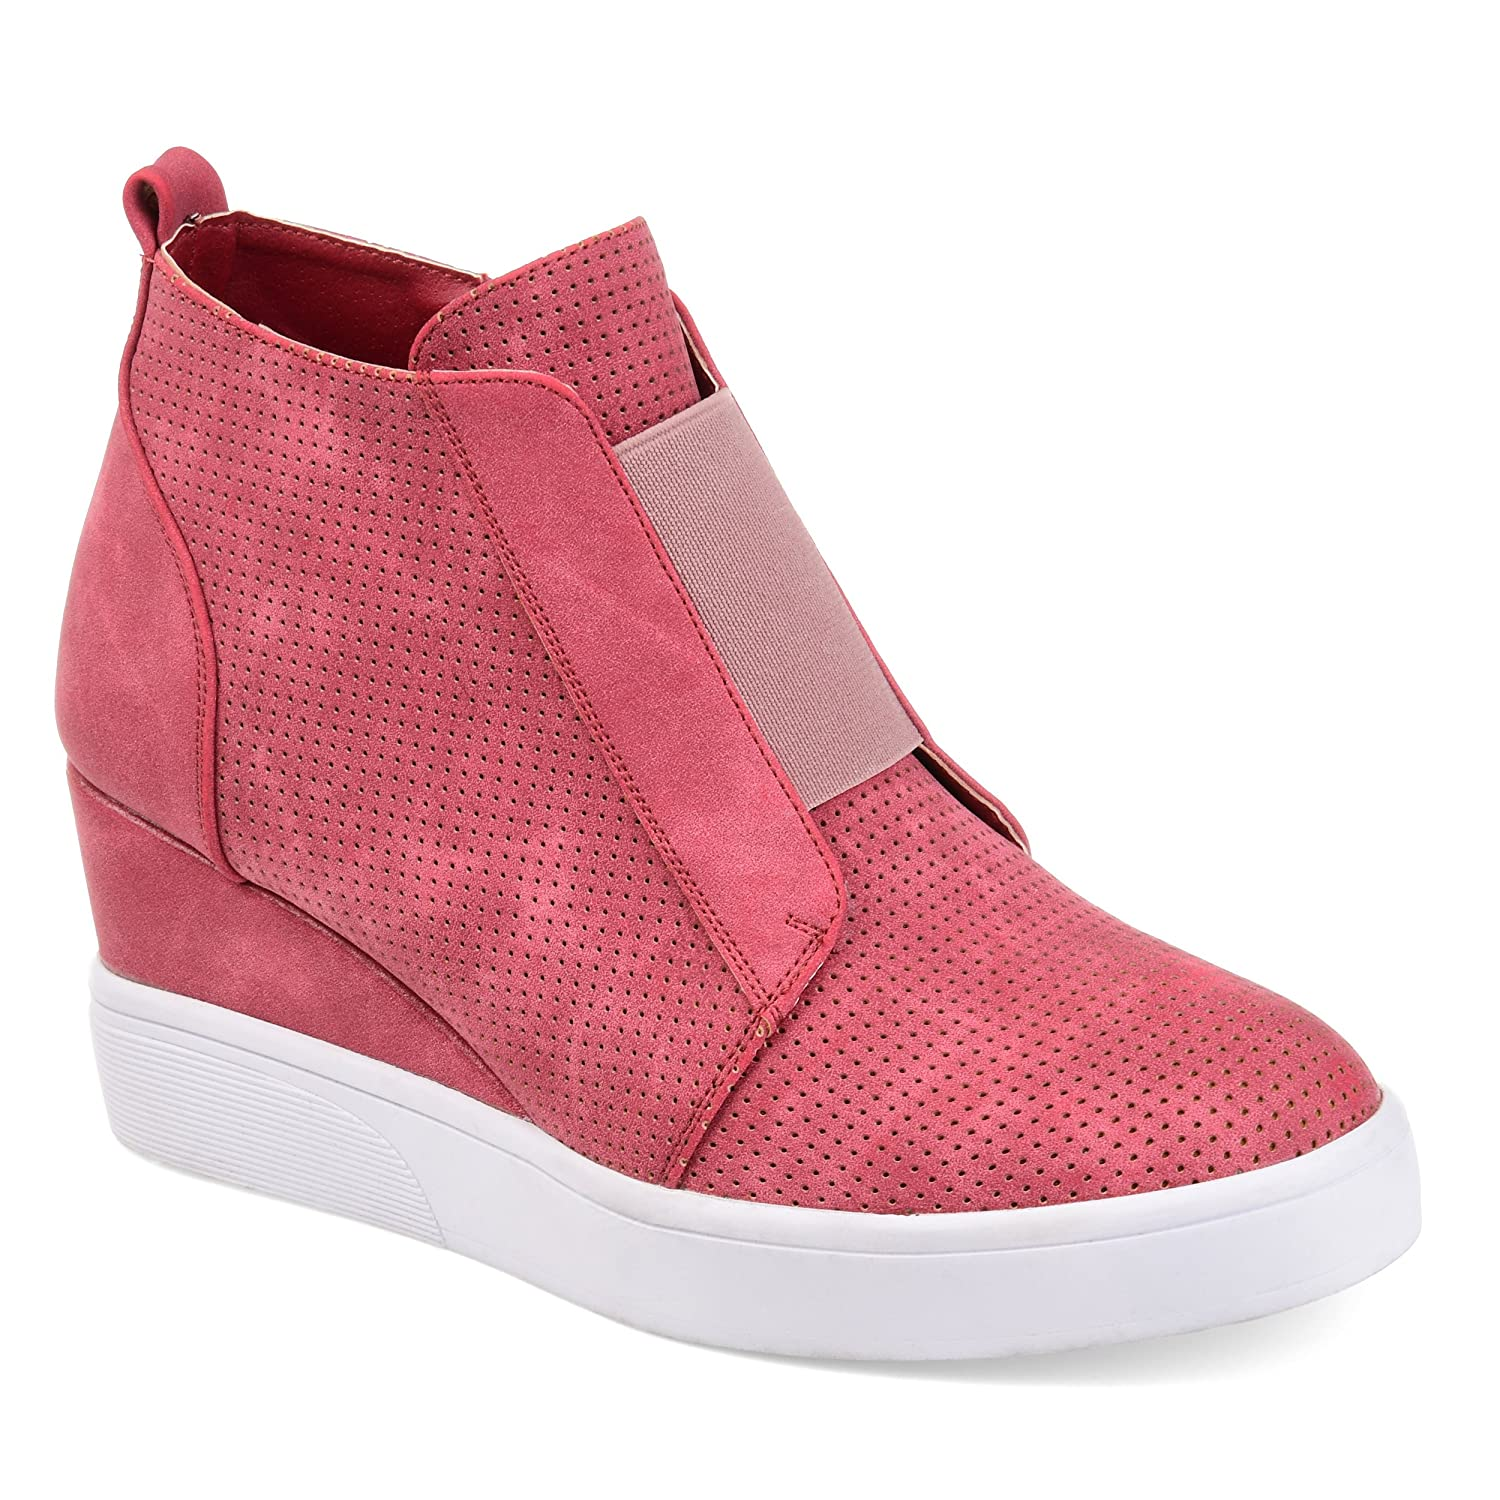 Journee Collection Womens Athleisure Laser-Cut Side-Zip Sneaker Wedges B07BZ33R7Z 10 B(M) US|Pink